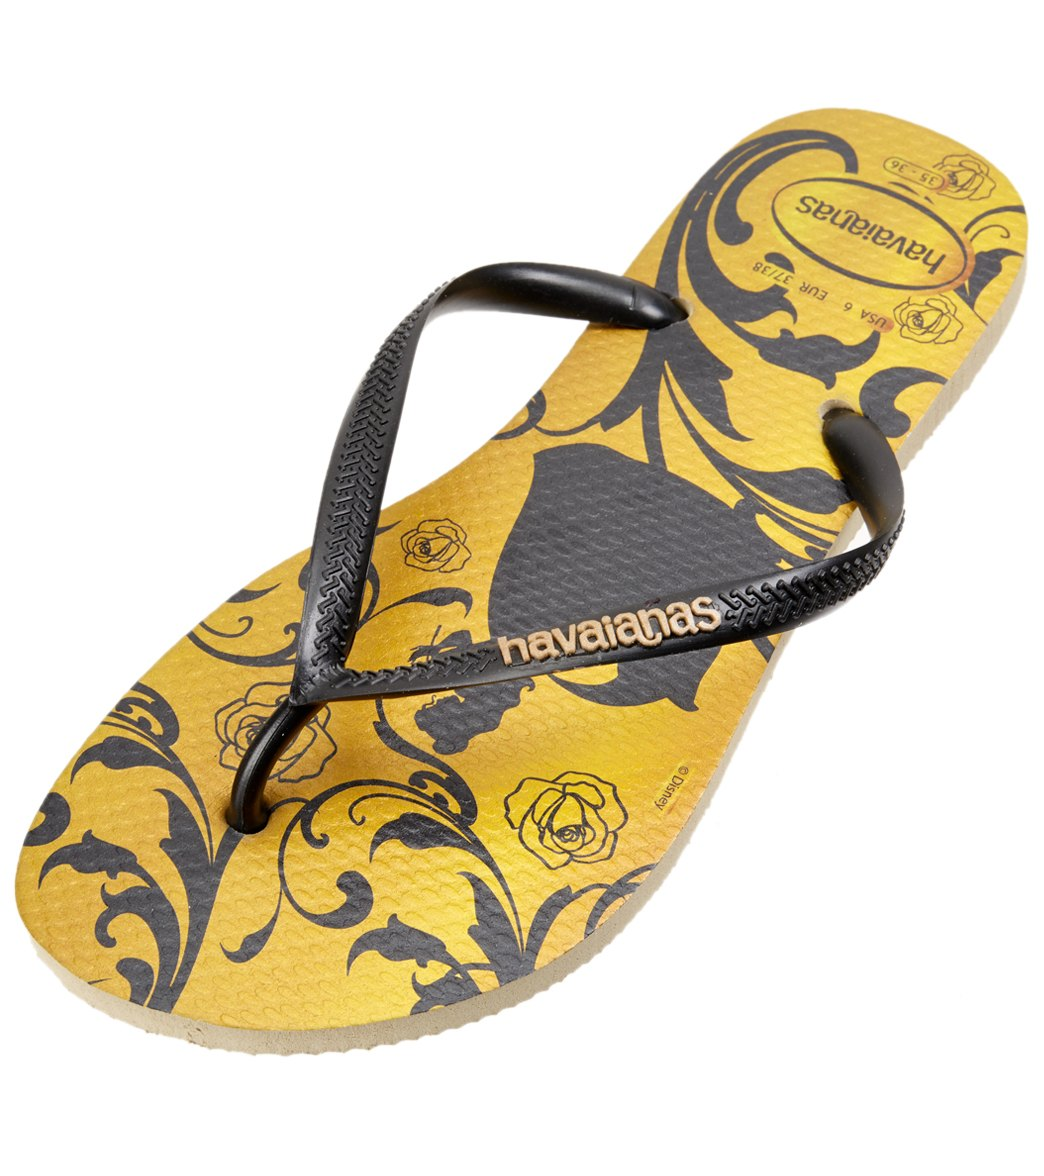 bb14795a7fd6a8 Havaianas Women s Slim Millennial Belle Flip Flop at SwimOutlet.com